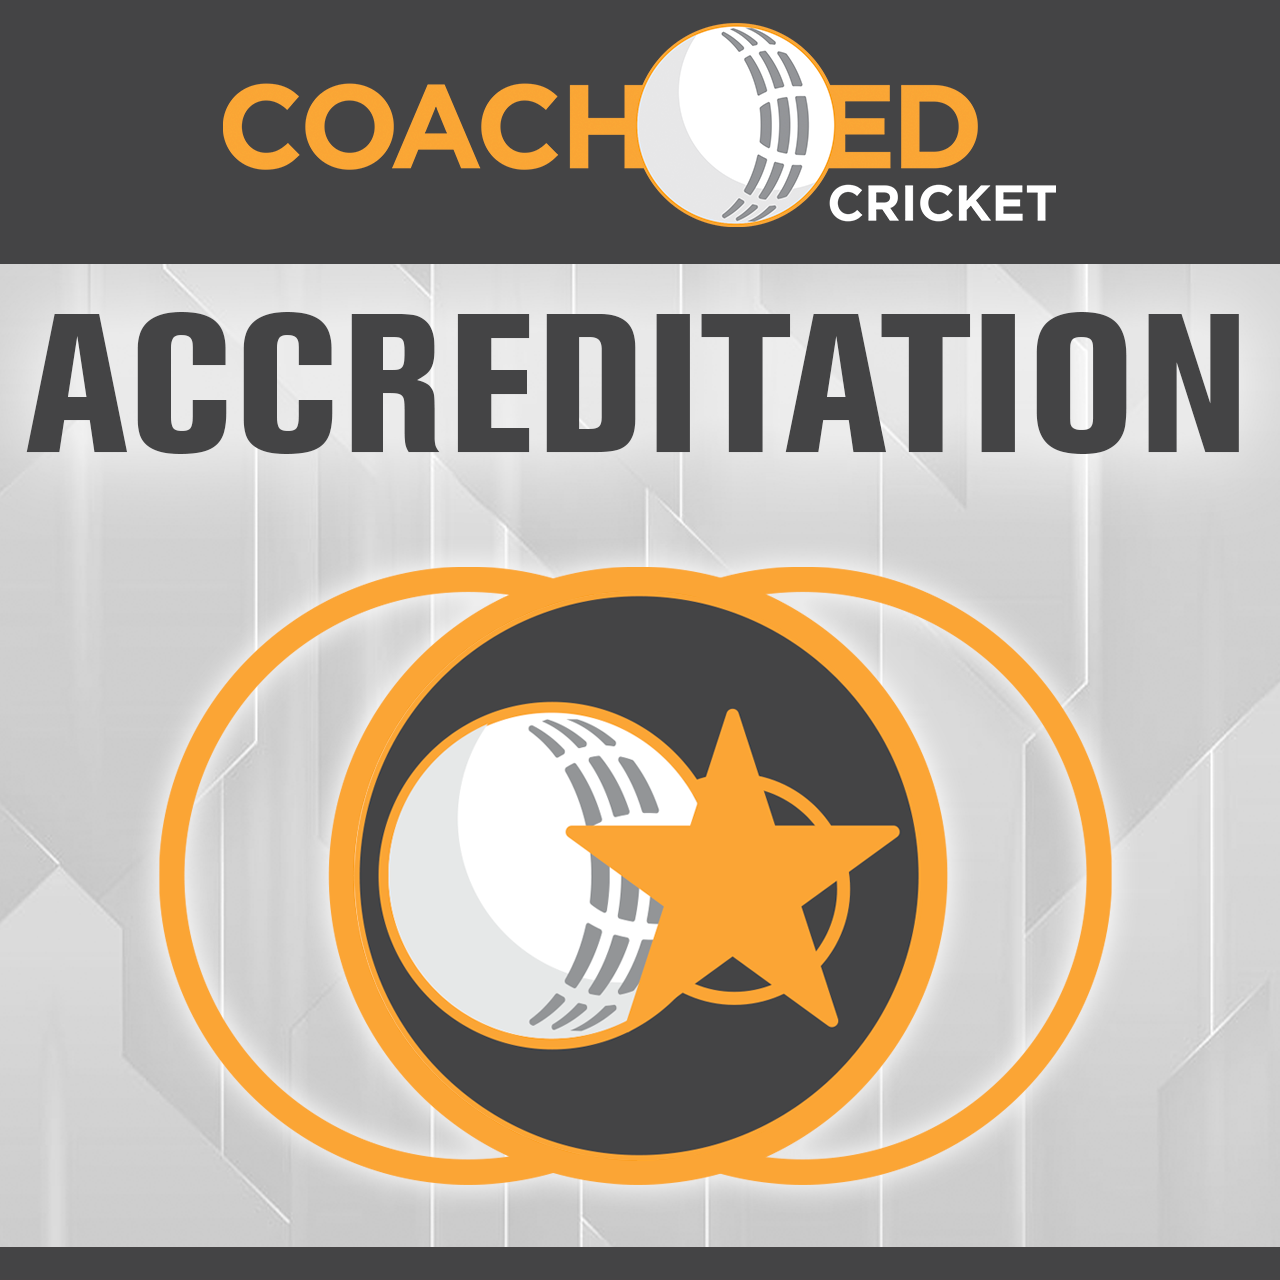 CoachED Cricket Accreditation Sign Up